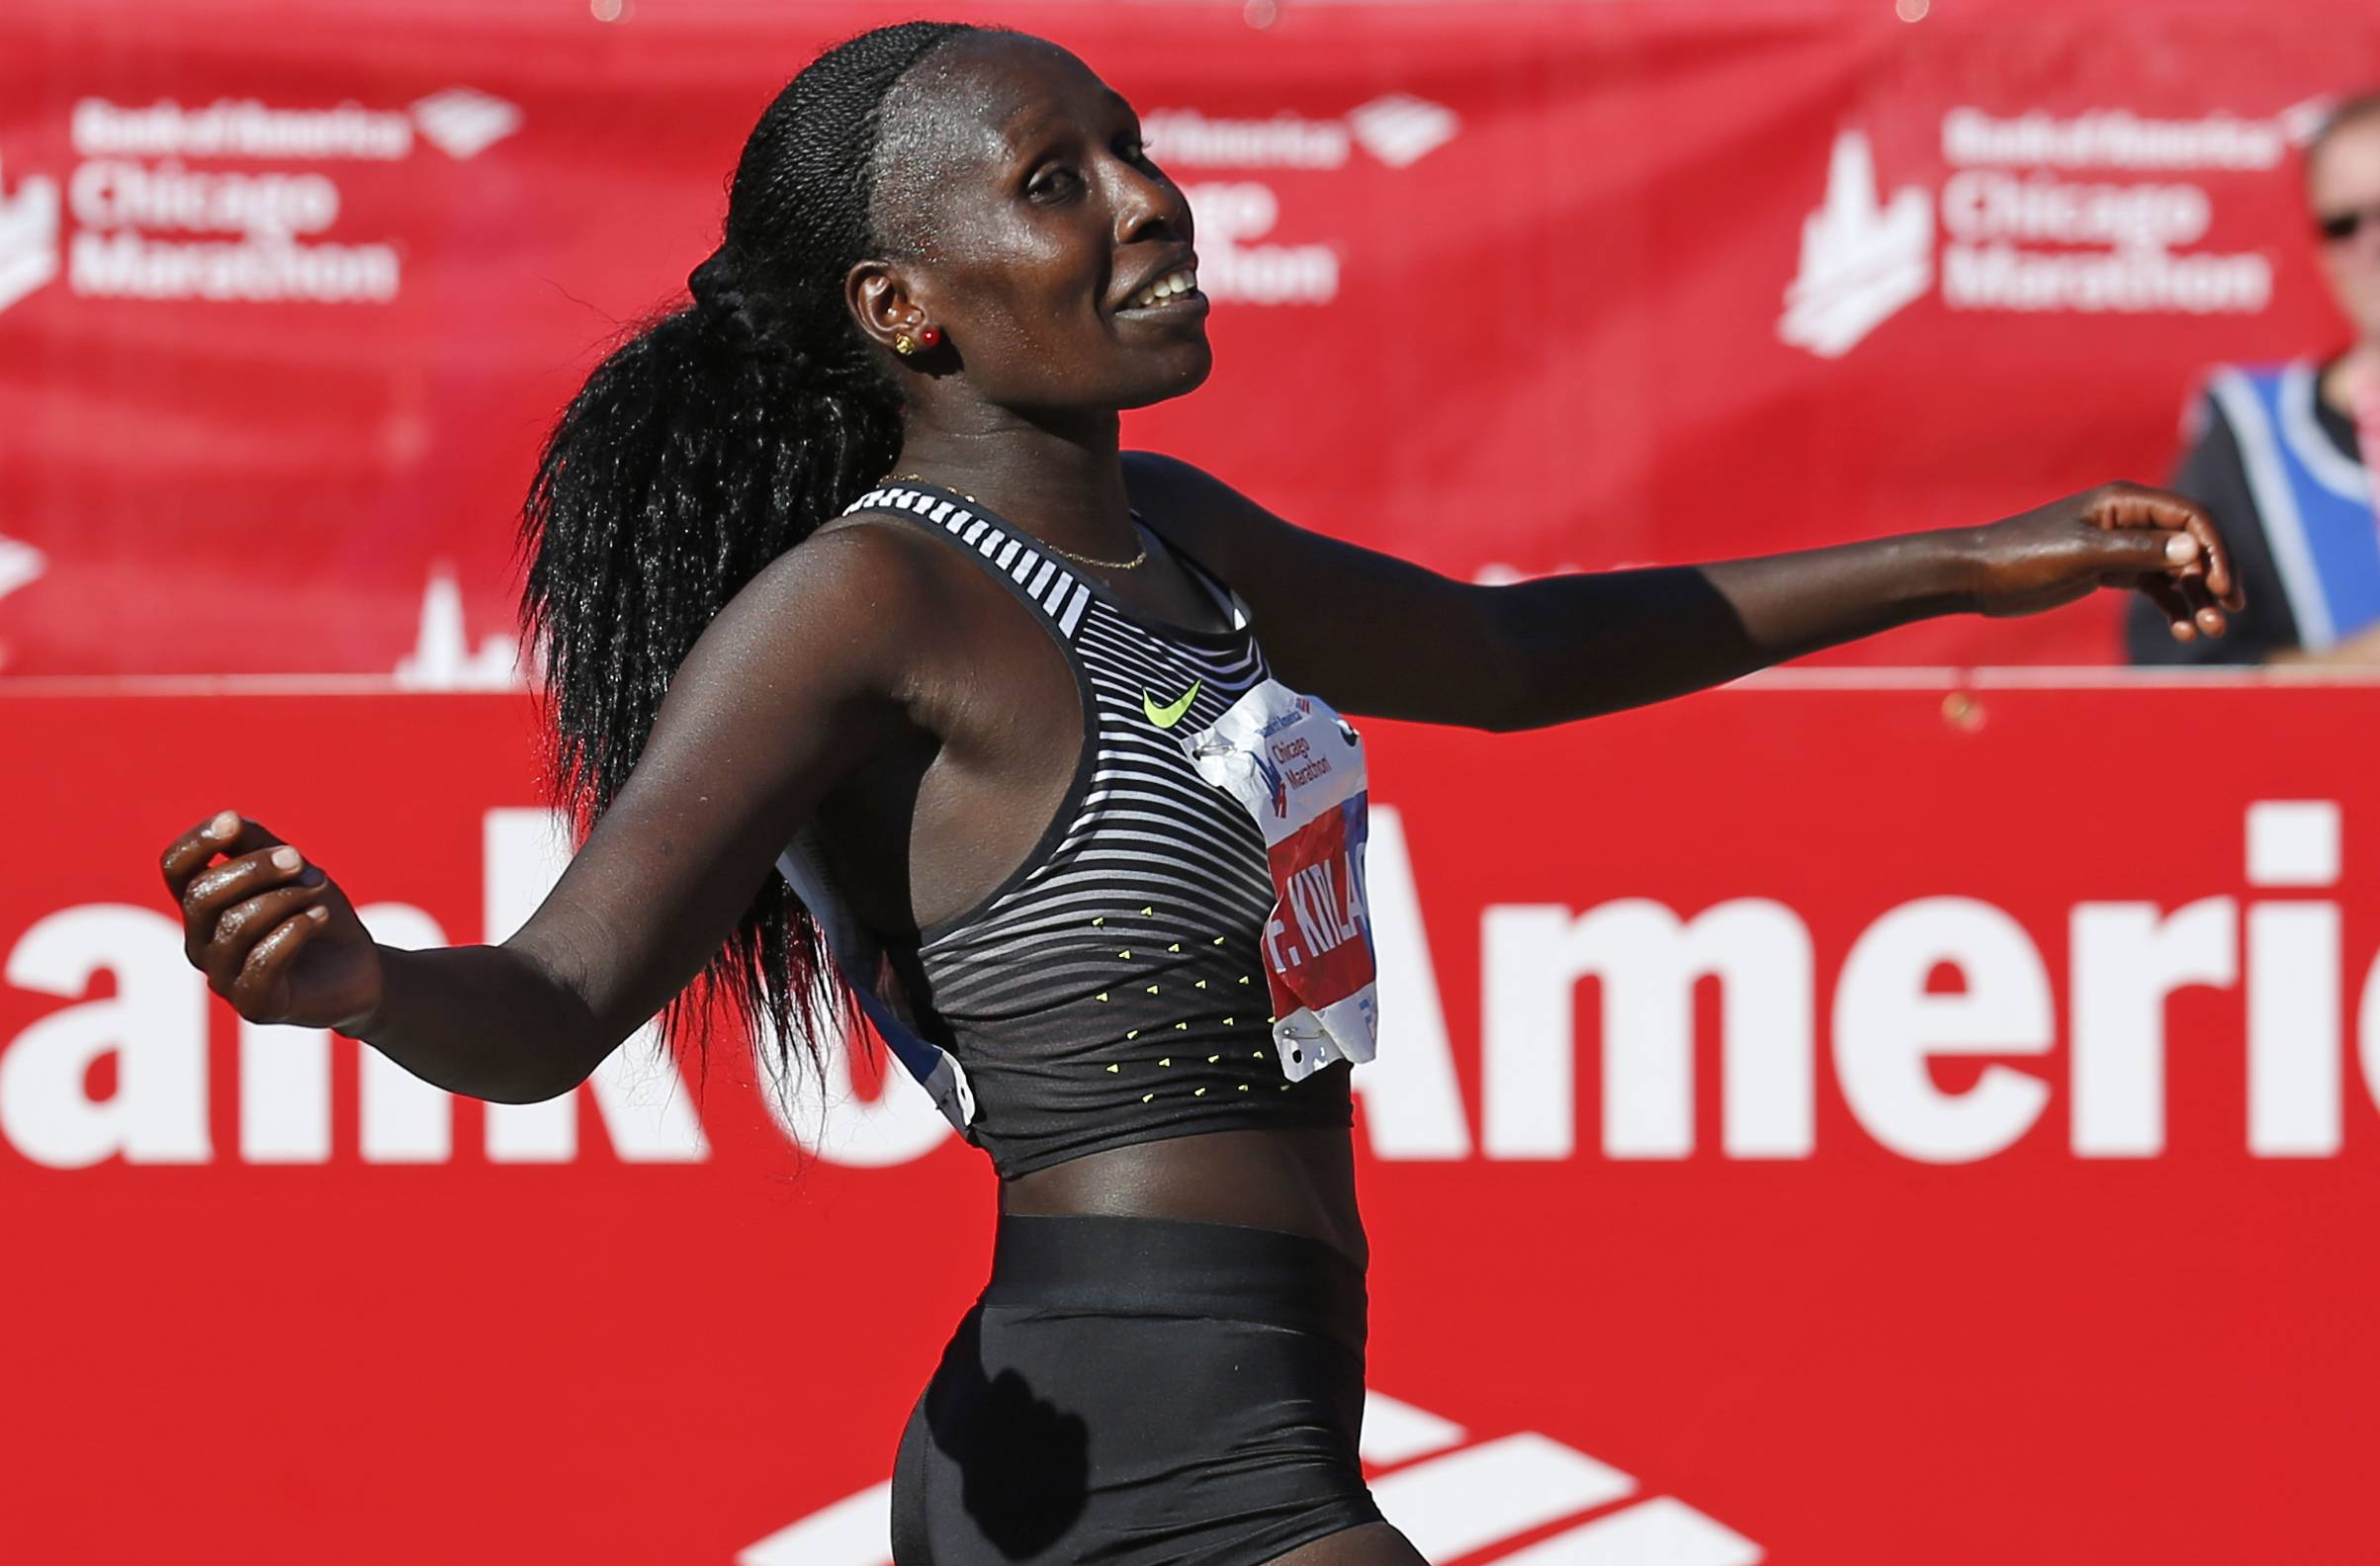 Florence Kiplagat of Kenya will return to try for her third straight win in the Chicago Marathon.